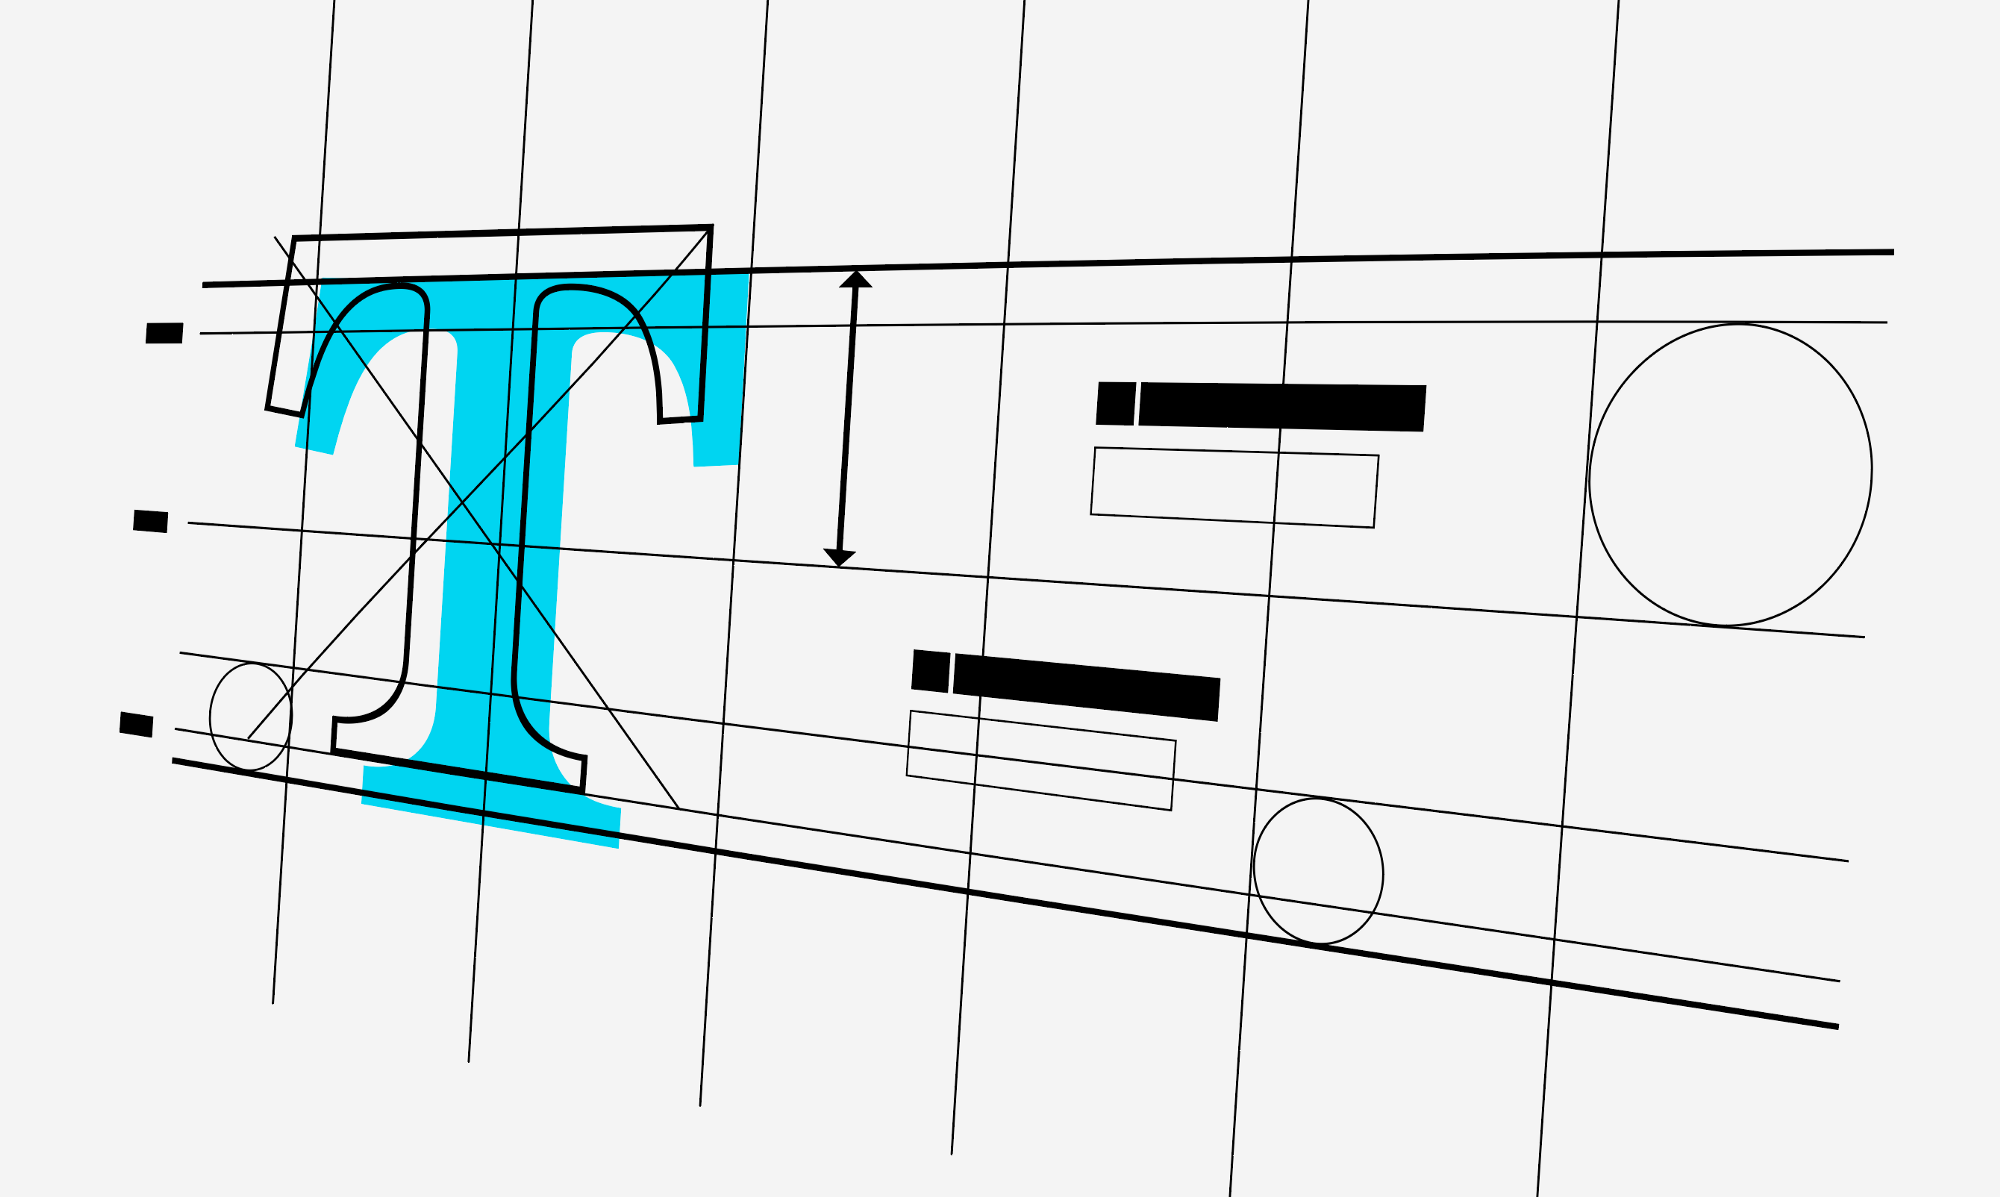 Illustration about a grid for typography